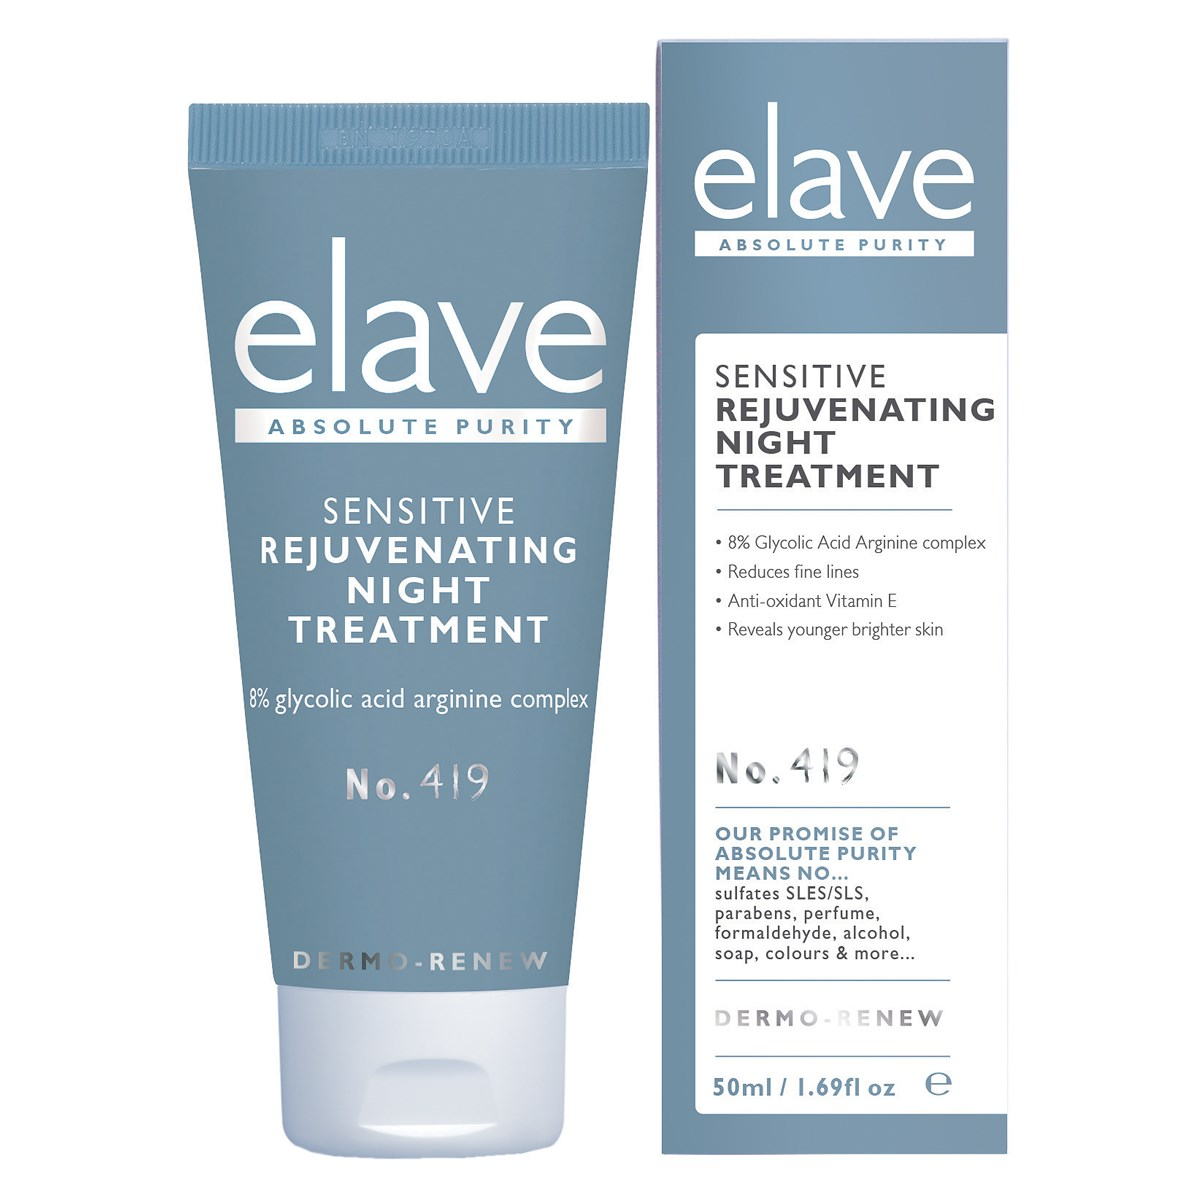 Elave Sensitive Rejuvenating Night Treatment